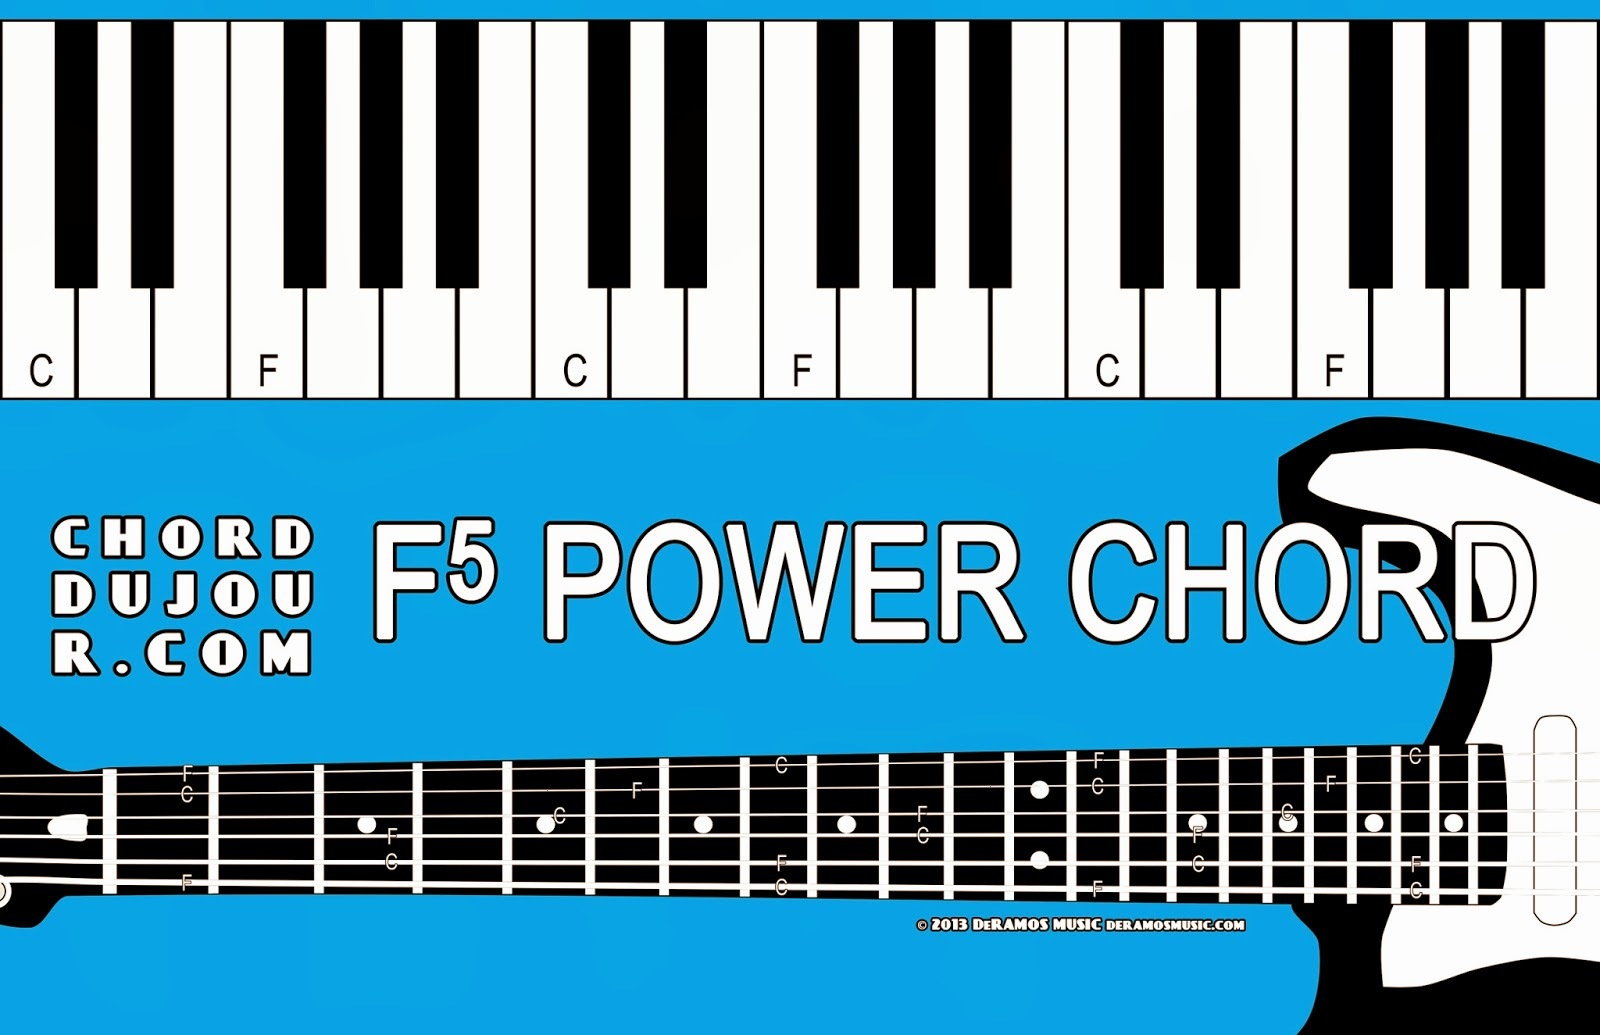 Chord du jour dictionary f5 power chord dictionary f5 power chord hexwebz Choice Image